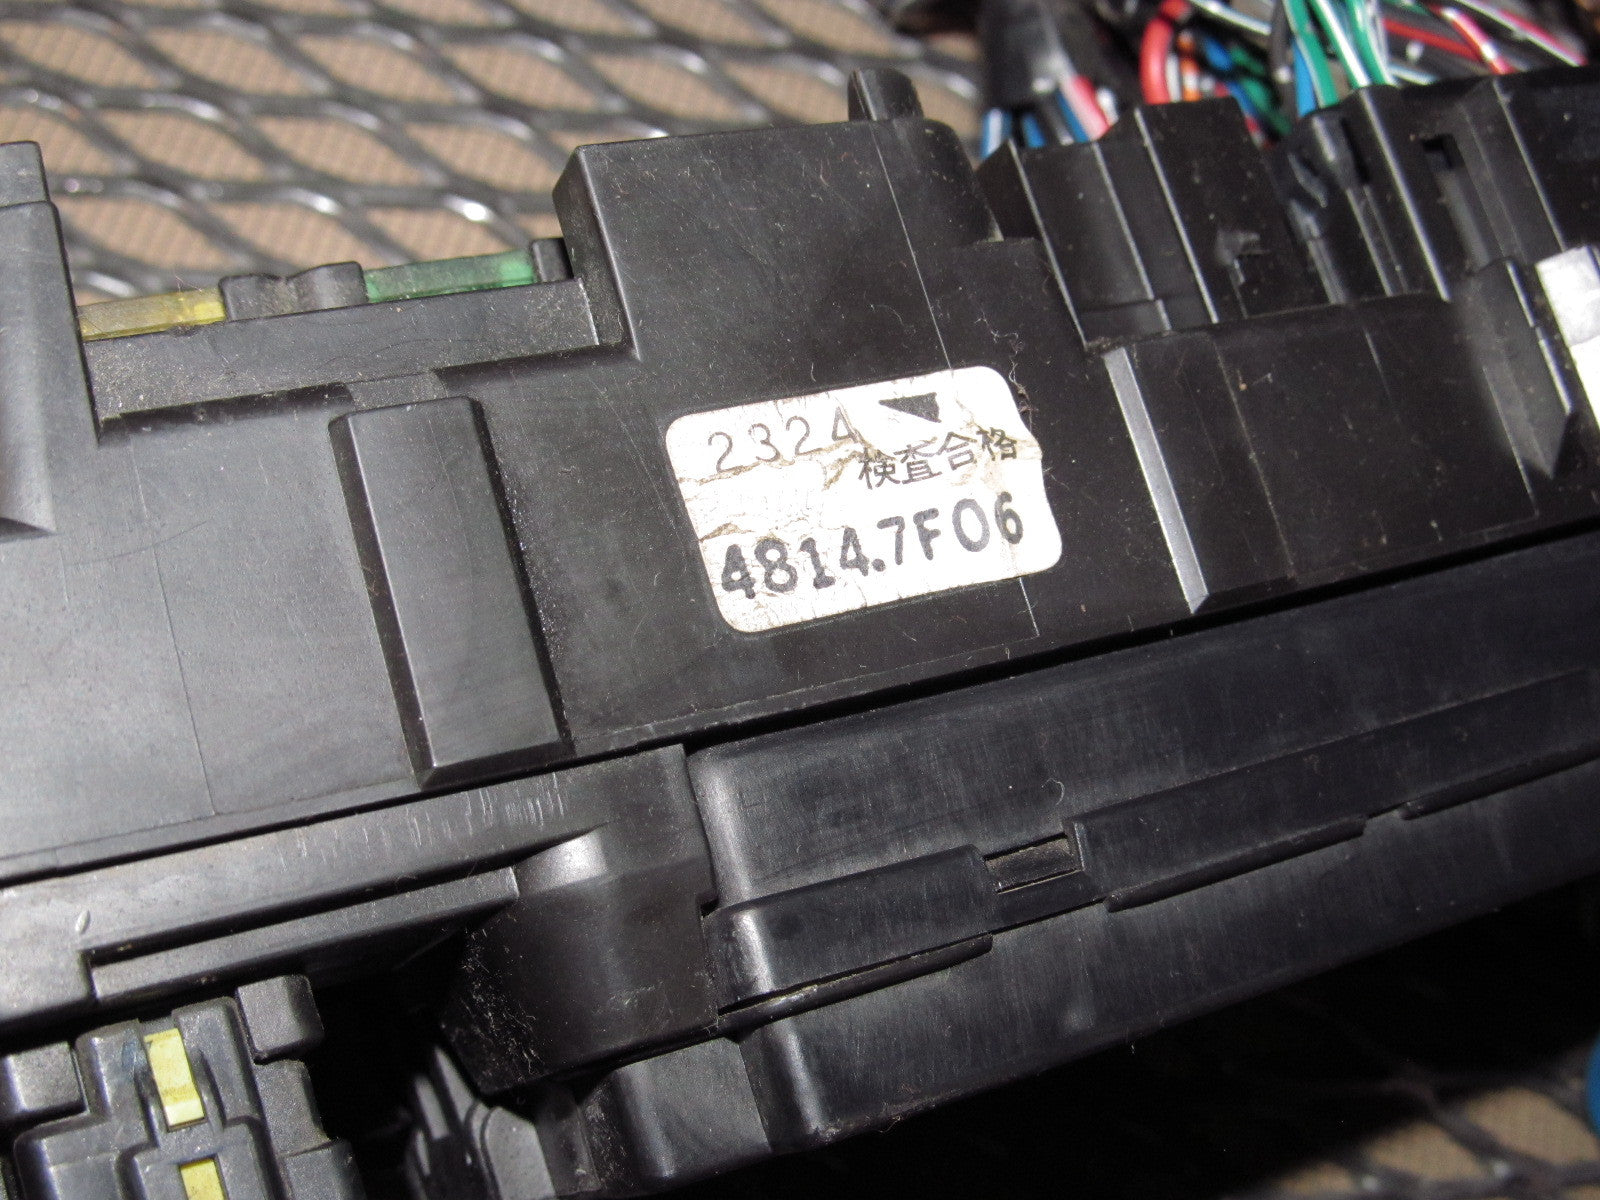 mitsubishi eclipse oem interior fuse box com 97 98 99 mitsubishi eclipse oem interior fuse box